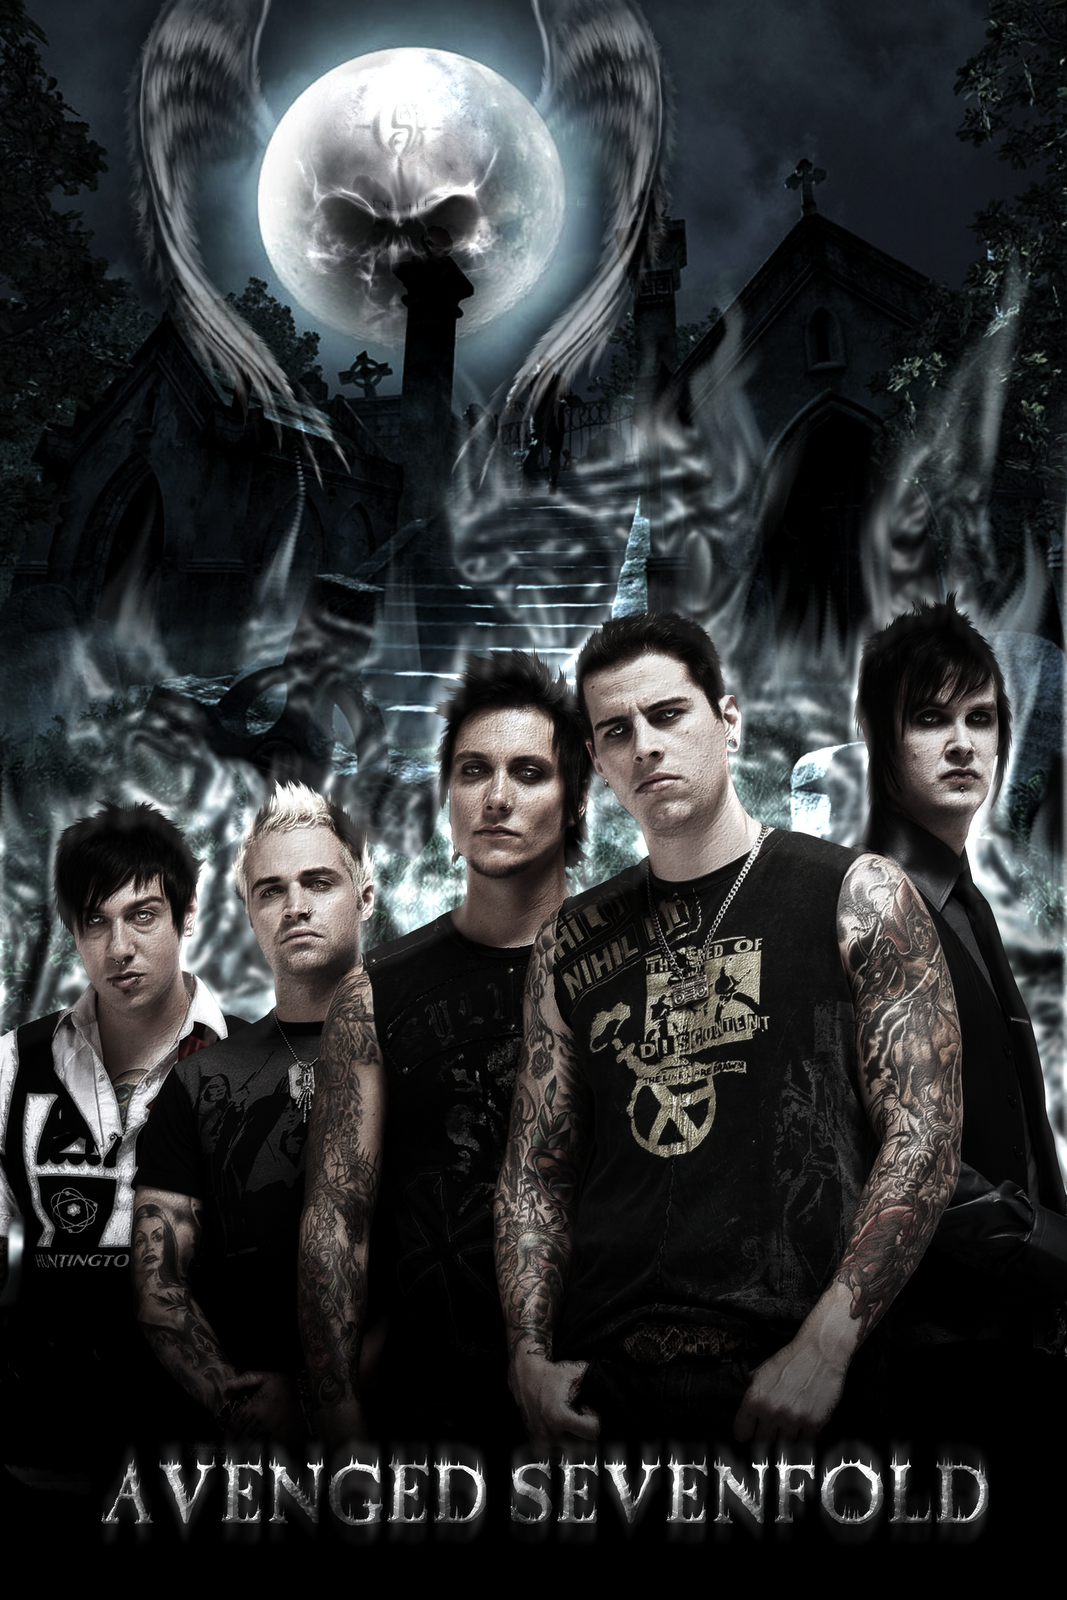 Avenged Sevenfold hail to the king album so perfectly ...